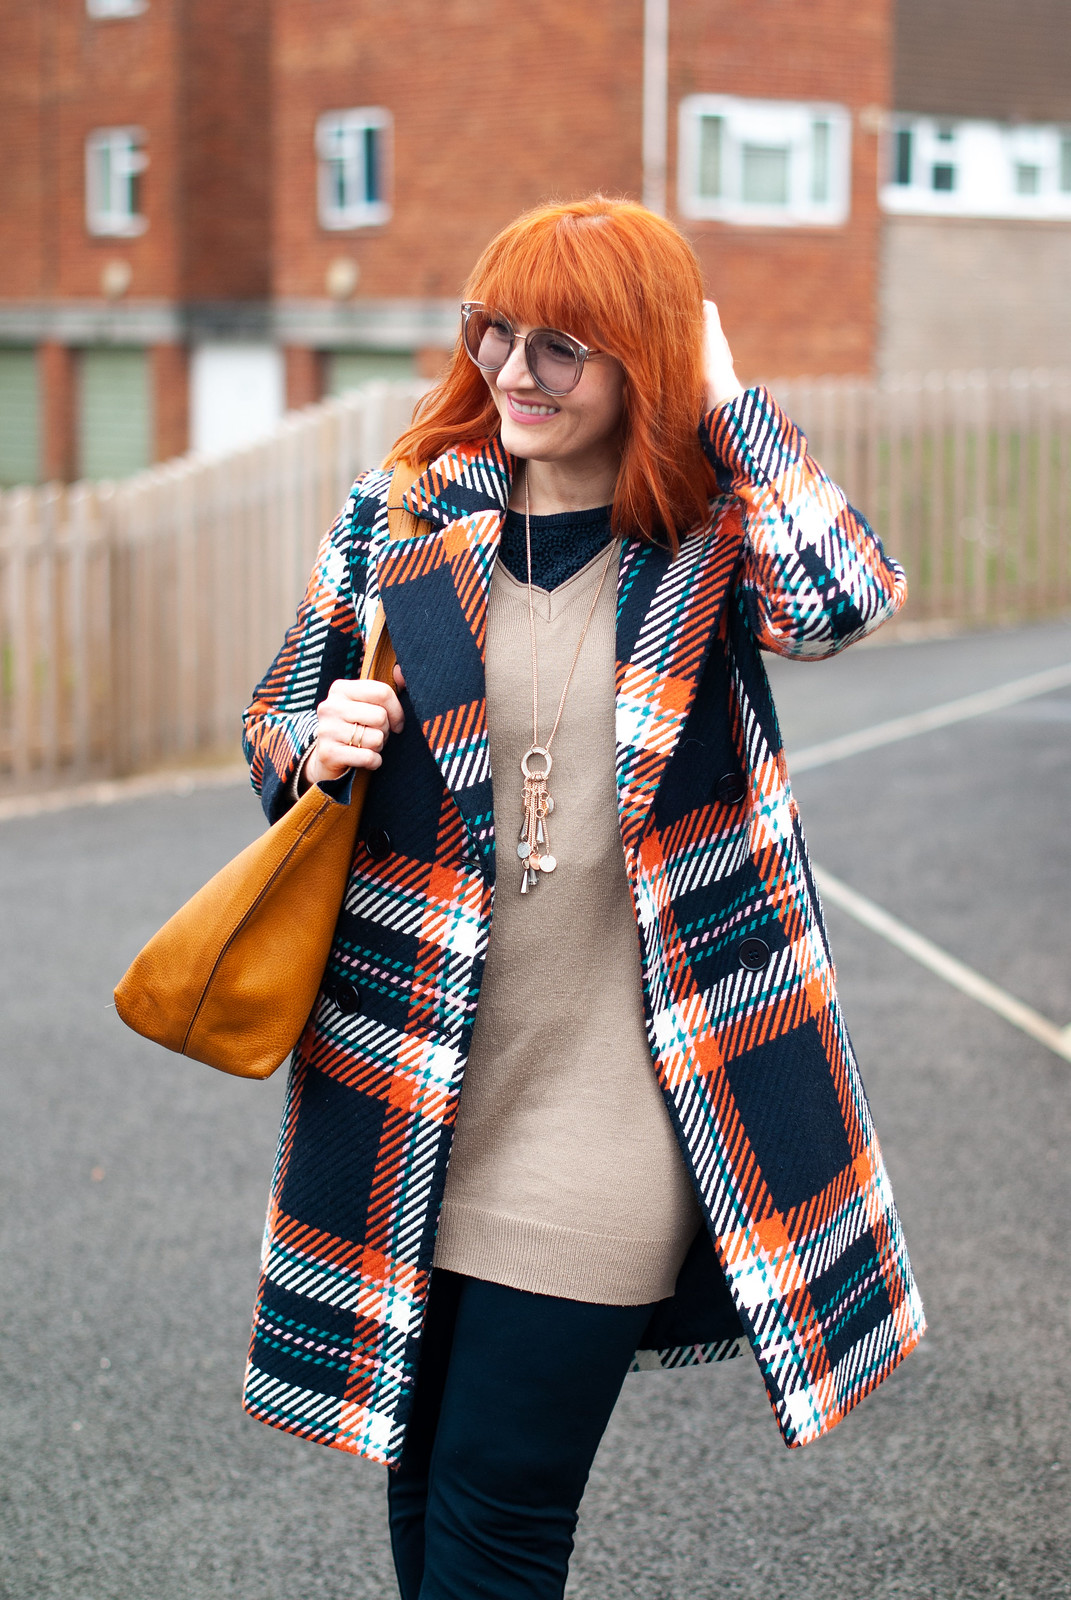 Over 40 Style: Dressing in Shades of Two Basic Colours (Navy and Orange) | Not Dressed As Lamb